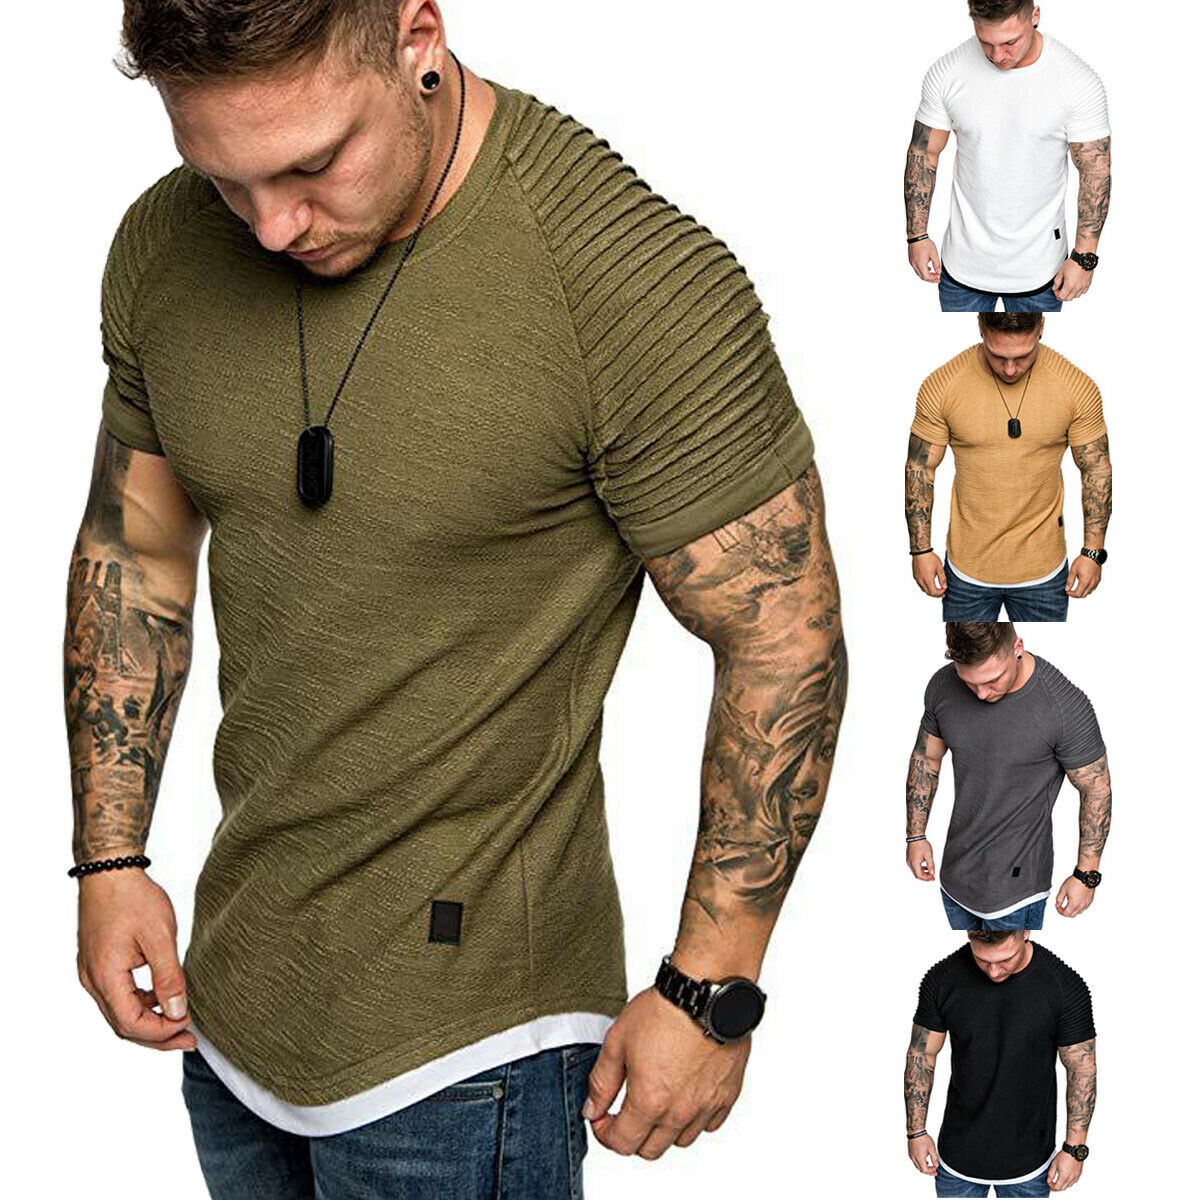 Hot Men's T-Shirts Pleated Wrinkled Slim Fit O Neck Short Sleeve Muscle Solid Casual Tops Shirts Summer Basic Tee New